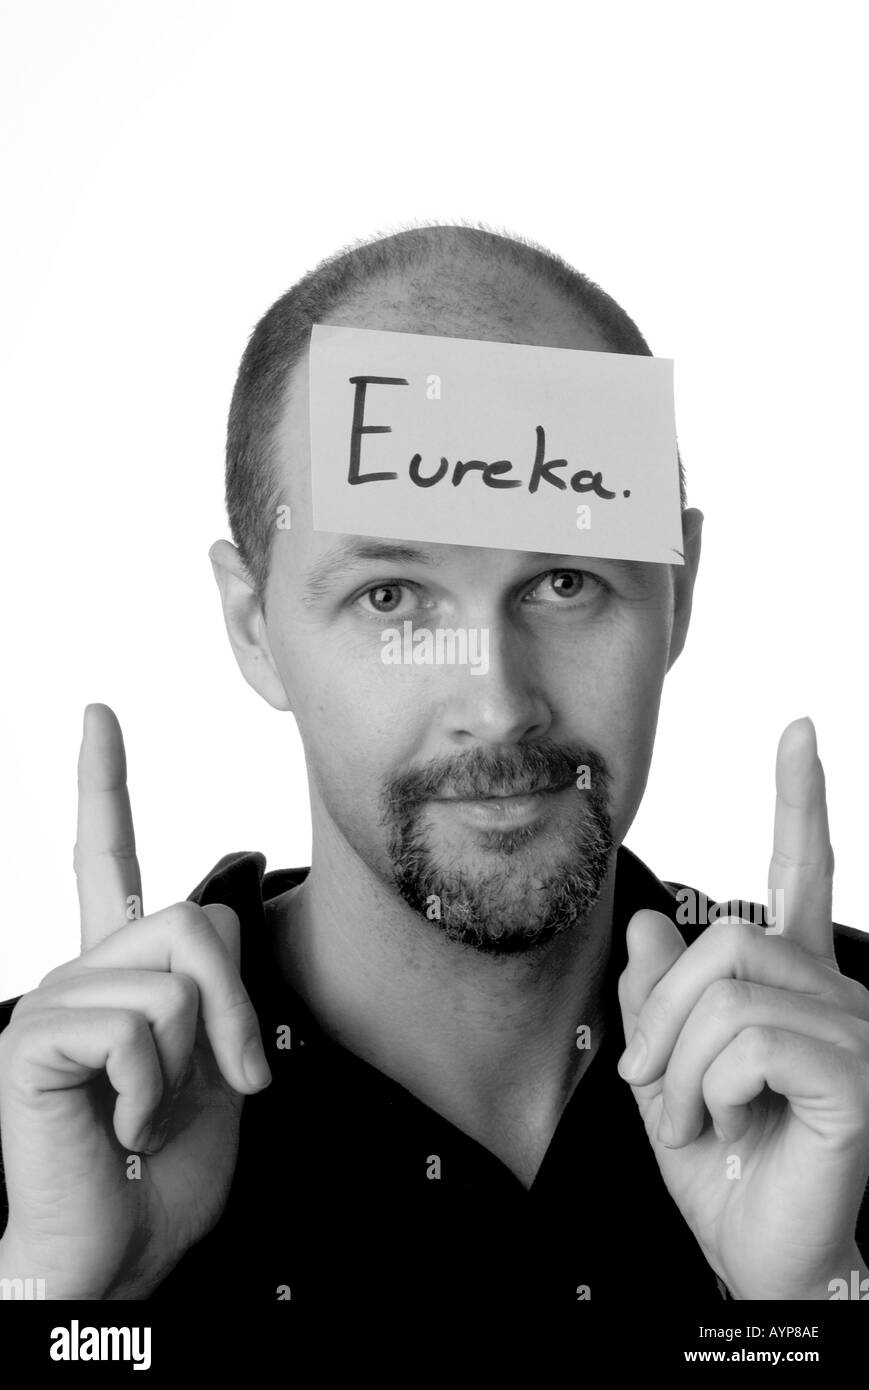 man with post it note on head man with post it note on head idea thought think invention eureka blue sky idea mind clever idea - Stock Image